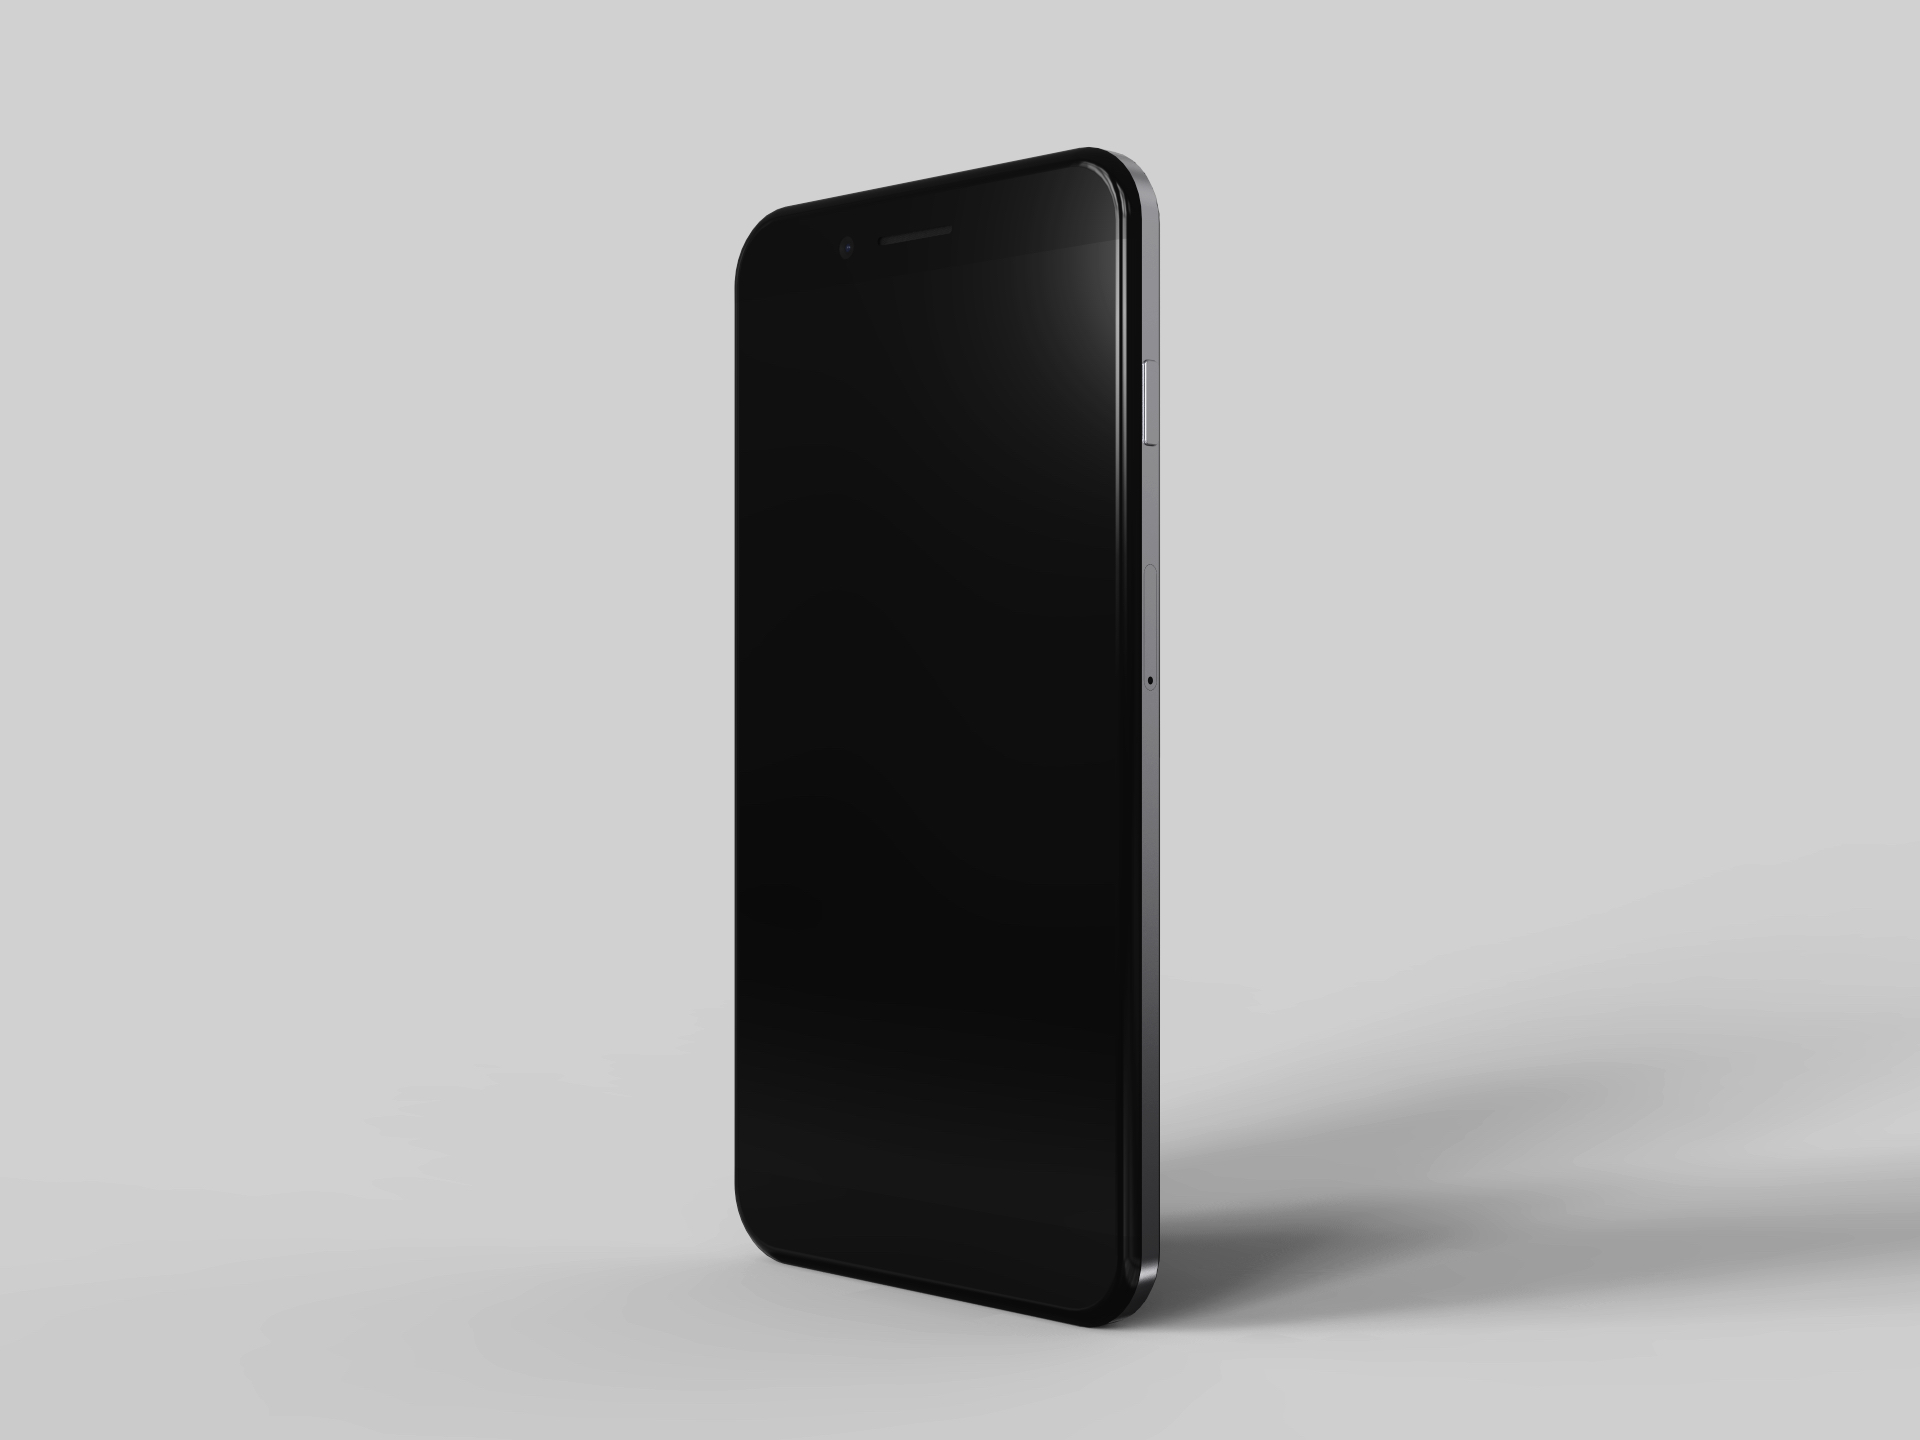 IPhone 8 Concept Shows Off New Design